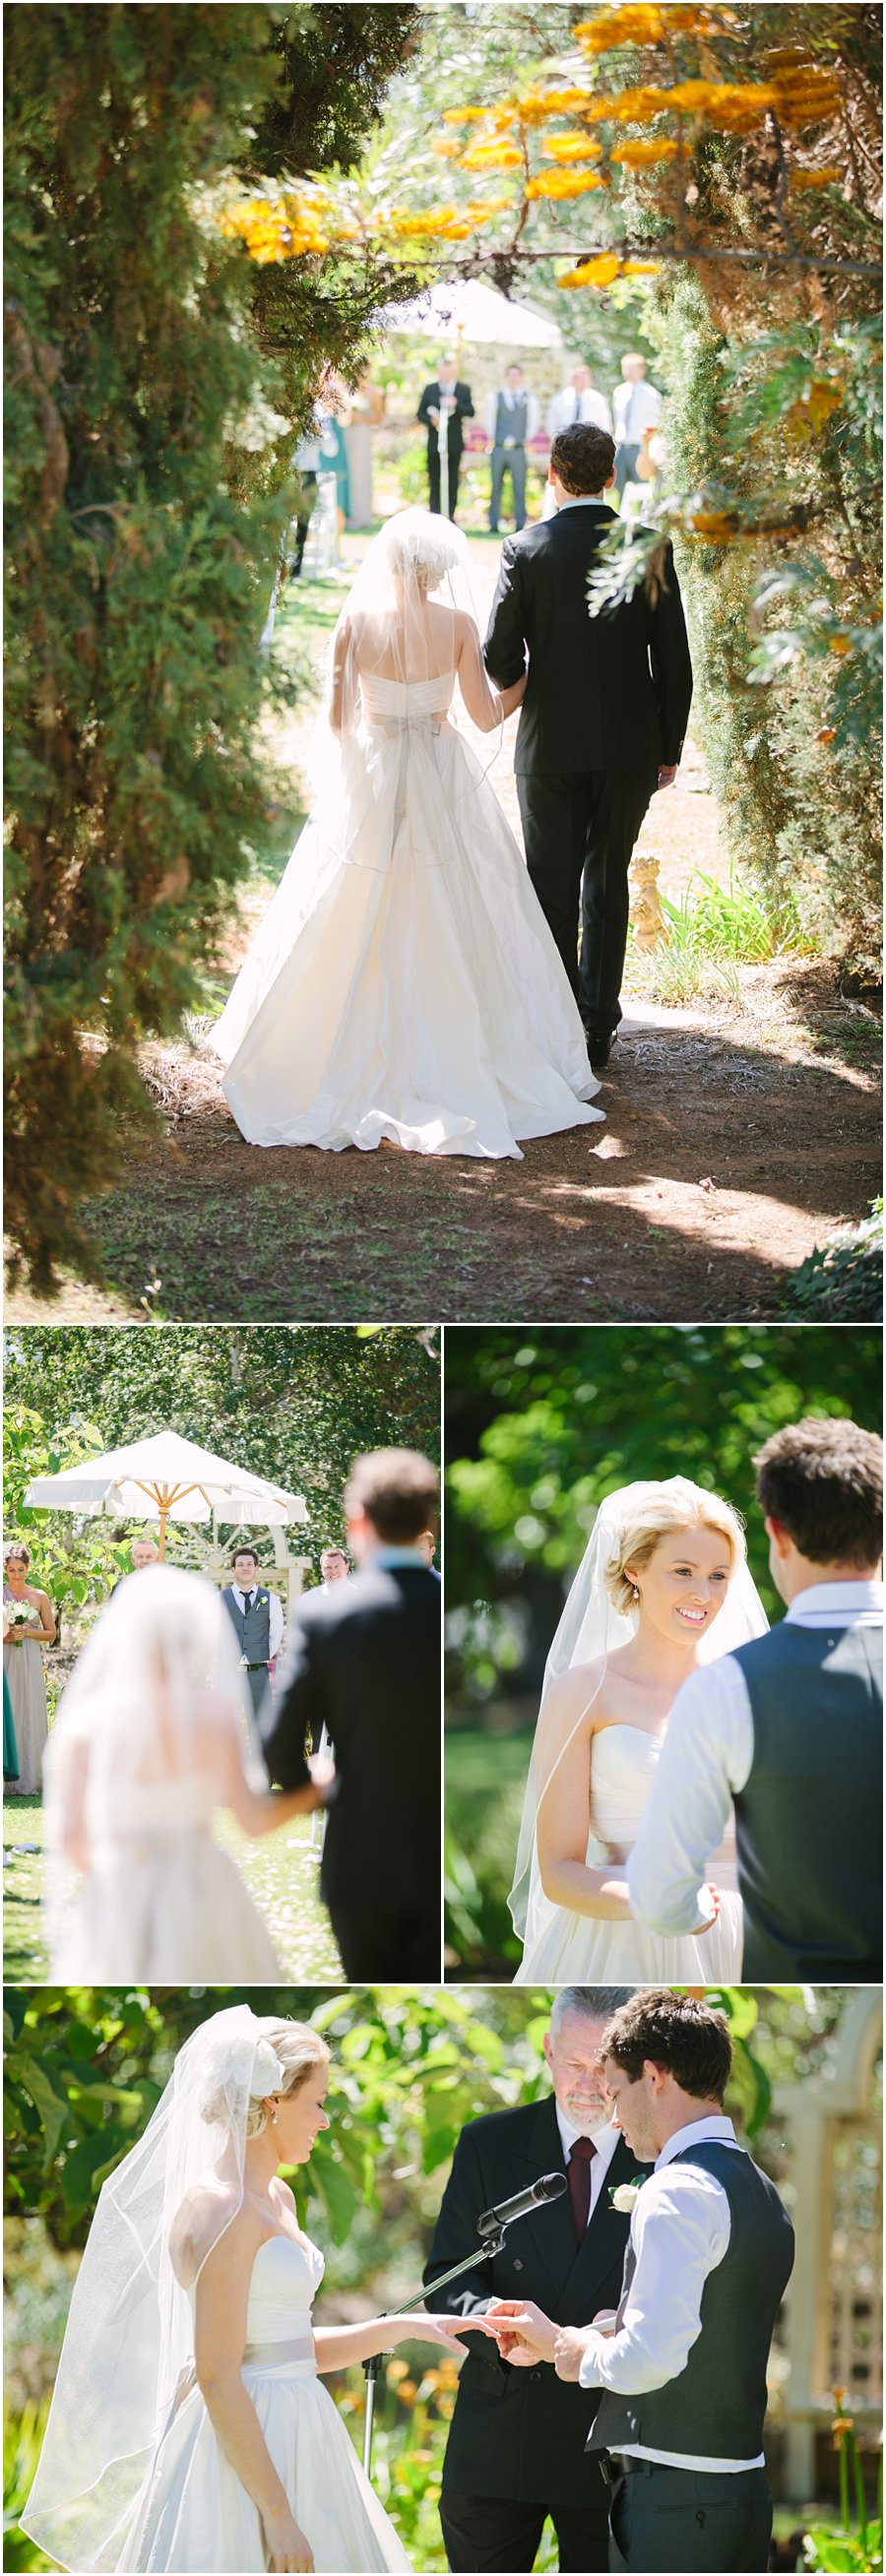 Zoe_Andrew_Swan_Hill_Garden_Wedding_09